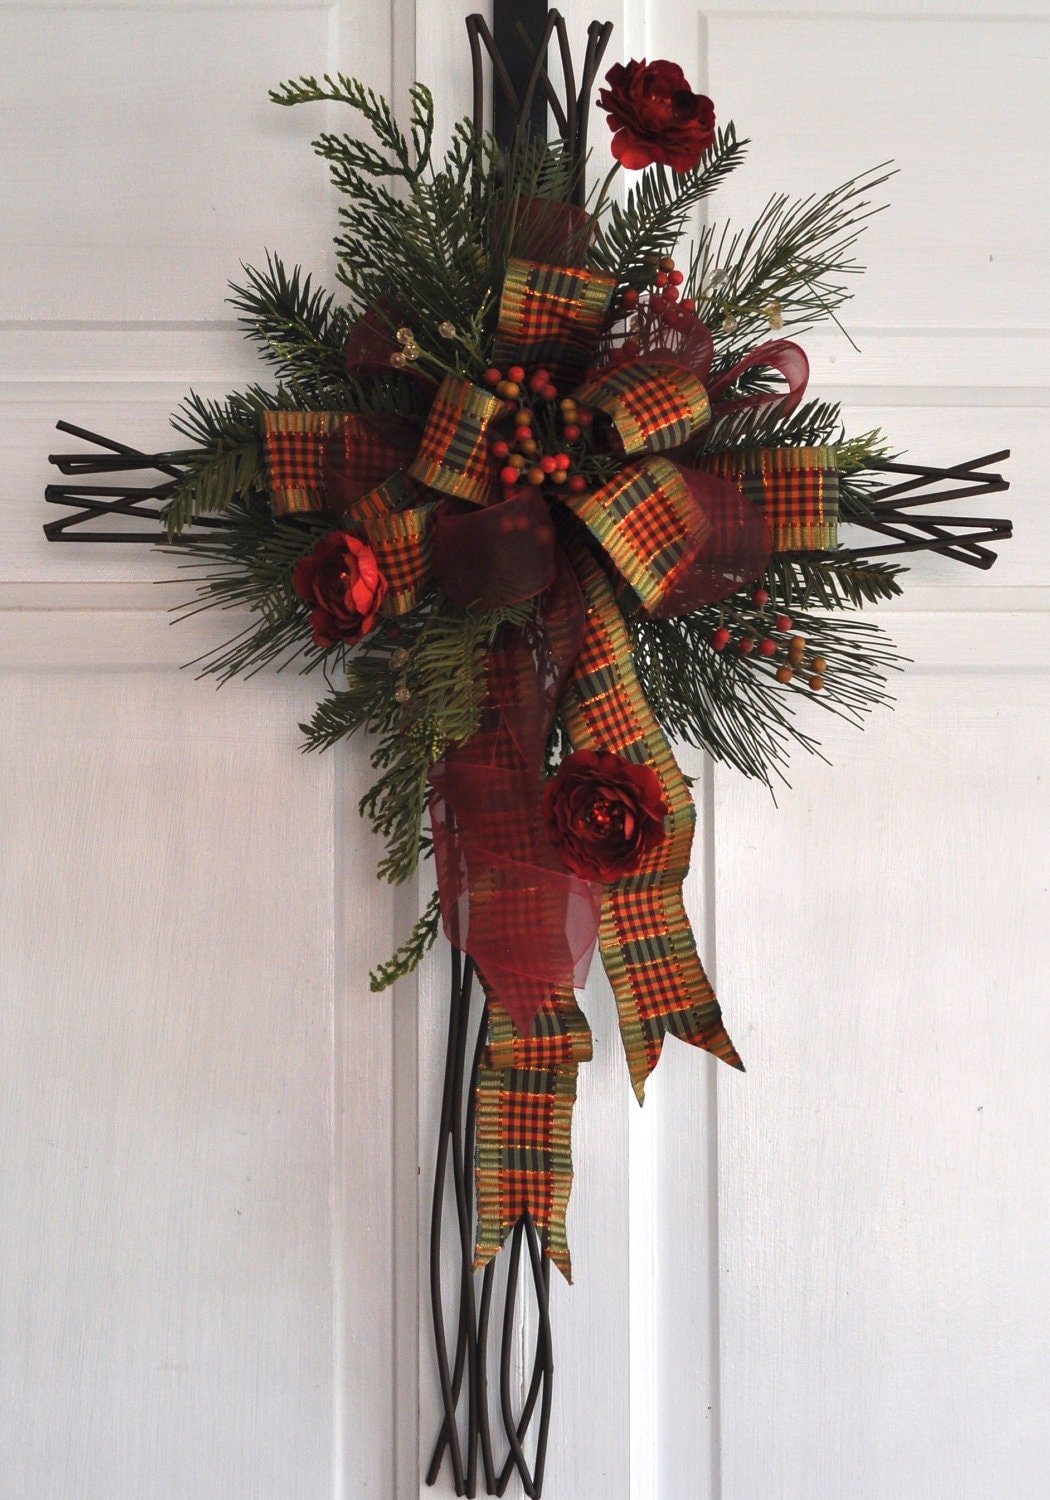 Christmas cross door hanger wall decor christian hostess gift for Decoration 4 christmas